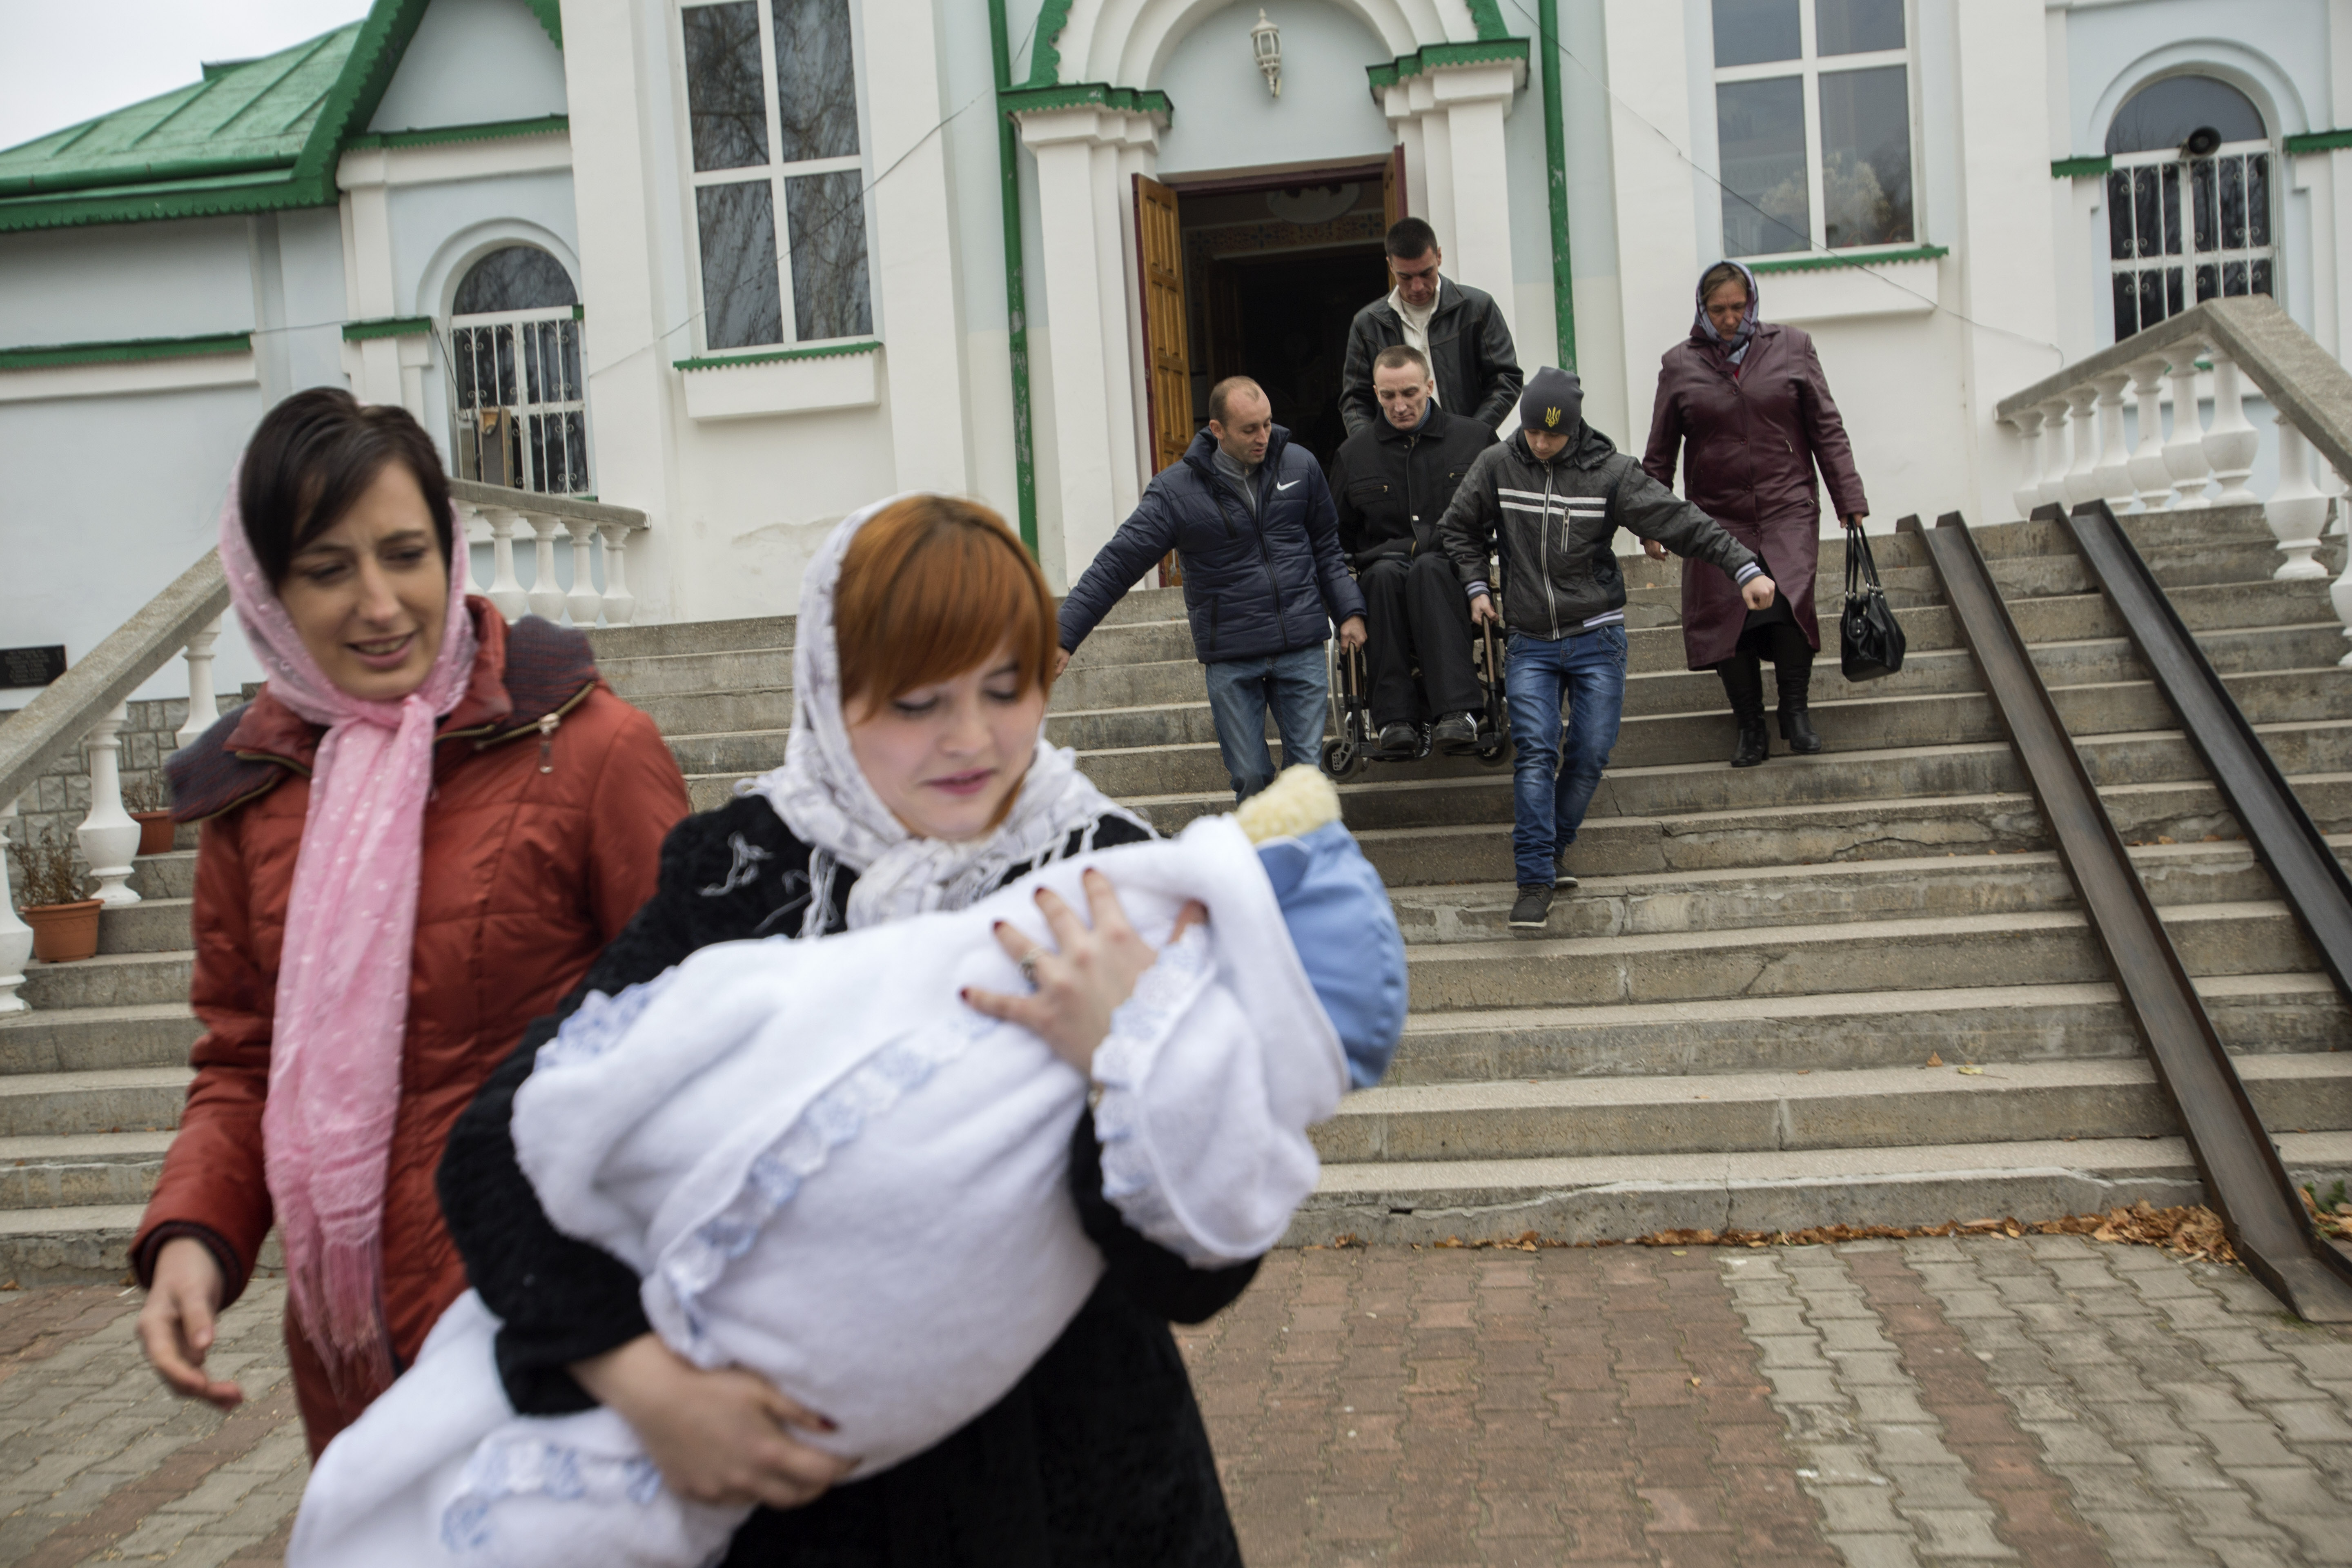 Honcharovsky is assisted down a set of stairs after his son's christening at a church in Teofipol, Ukraine, Nov. 16, 2014. Proper infrastructure for the physically disabled barely exists in some Ukrainian cities, towns and villages.